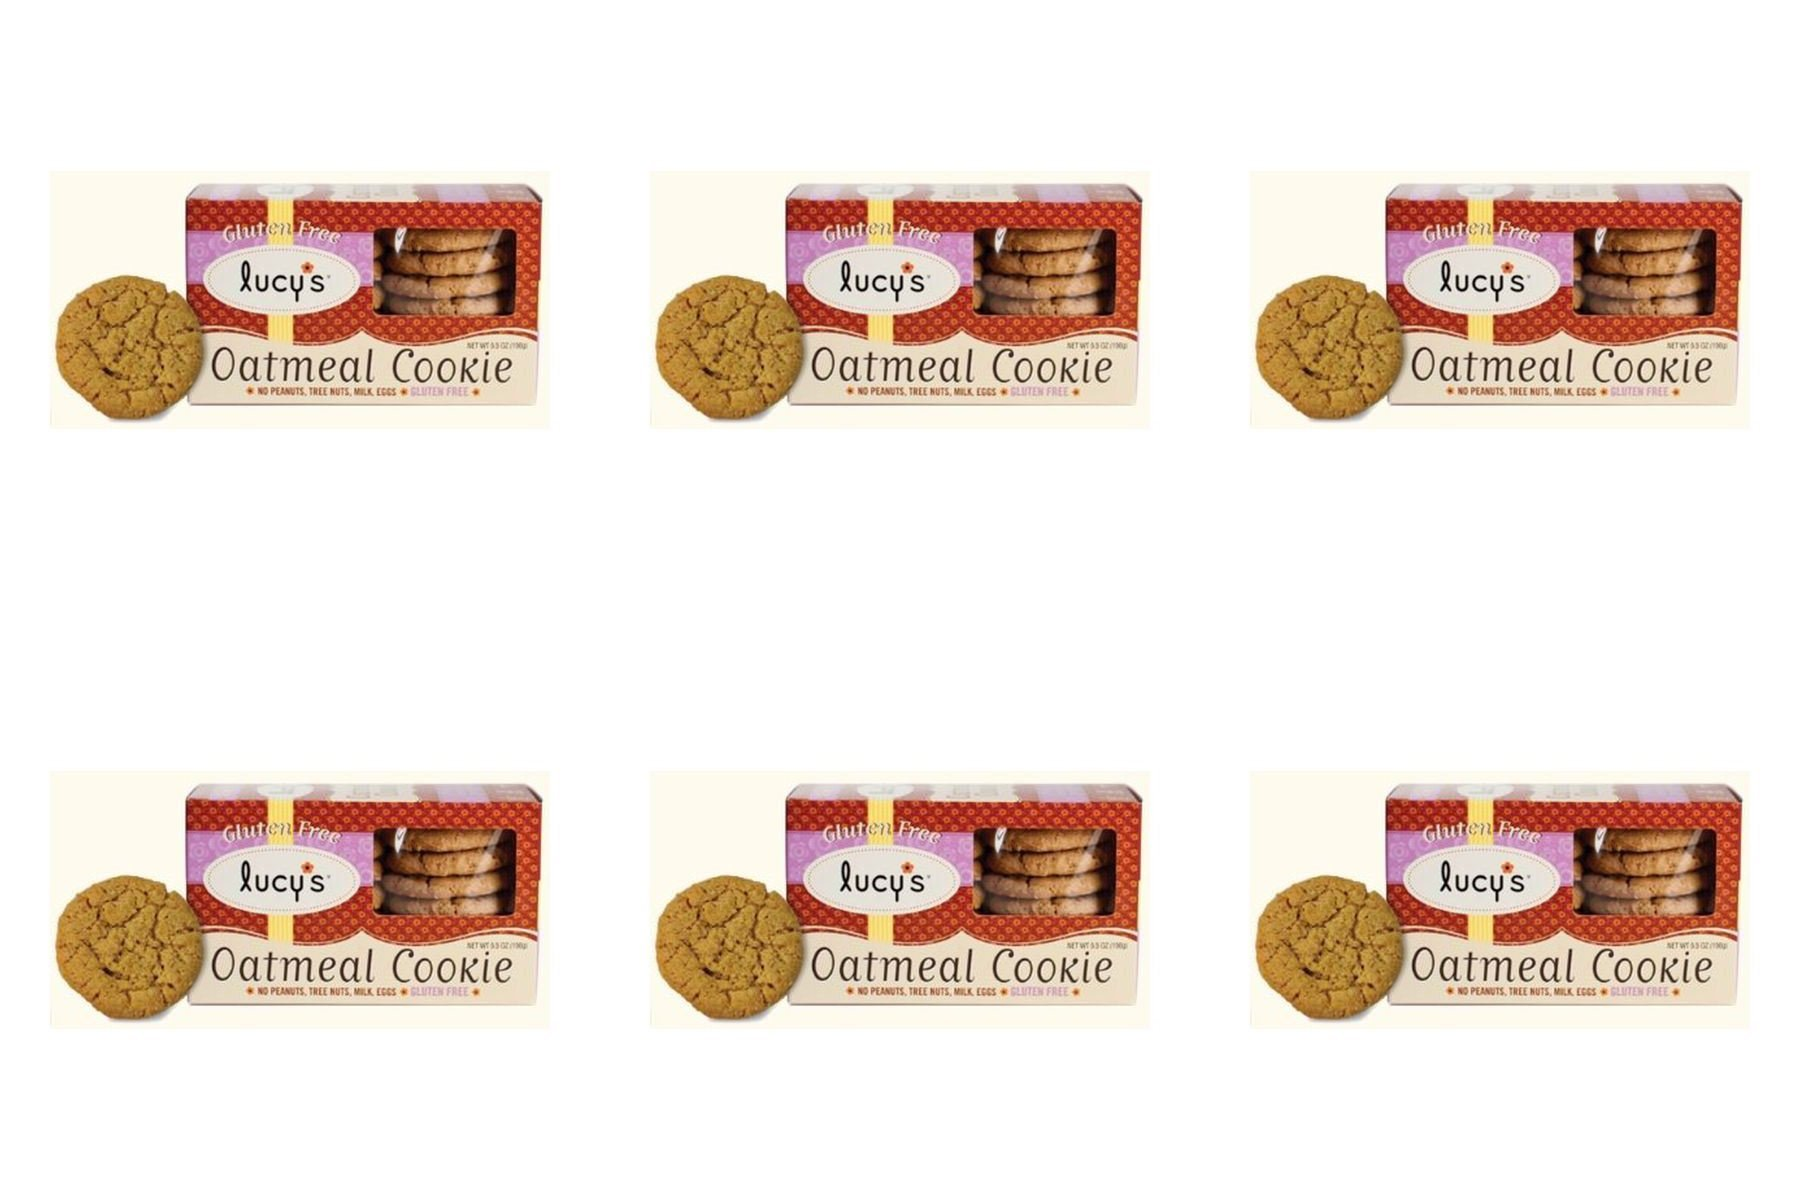 (6 PACK) - Lucy's Gluten Free Oatmeal Cookies| 156 g |6 PACK - SUPER SAVER - SAVE MONEY